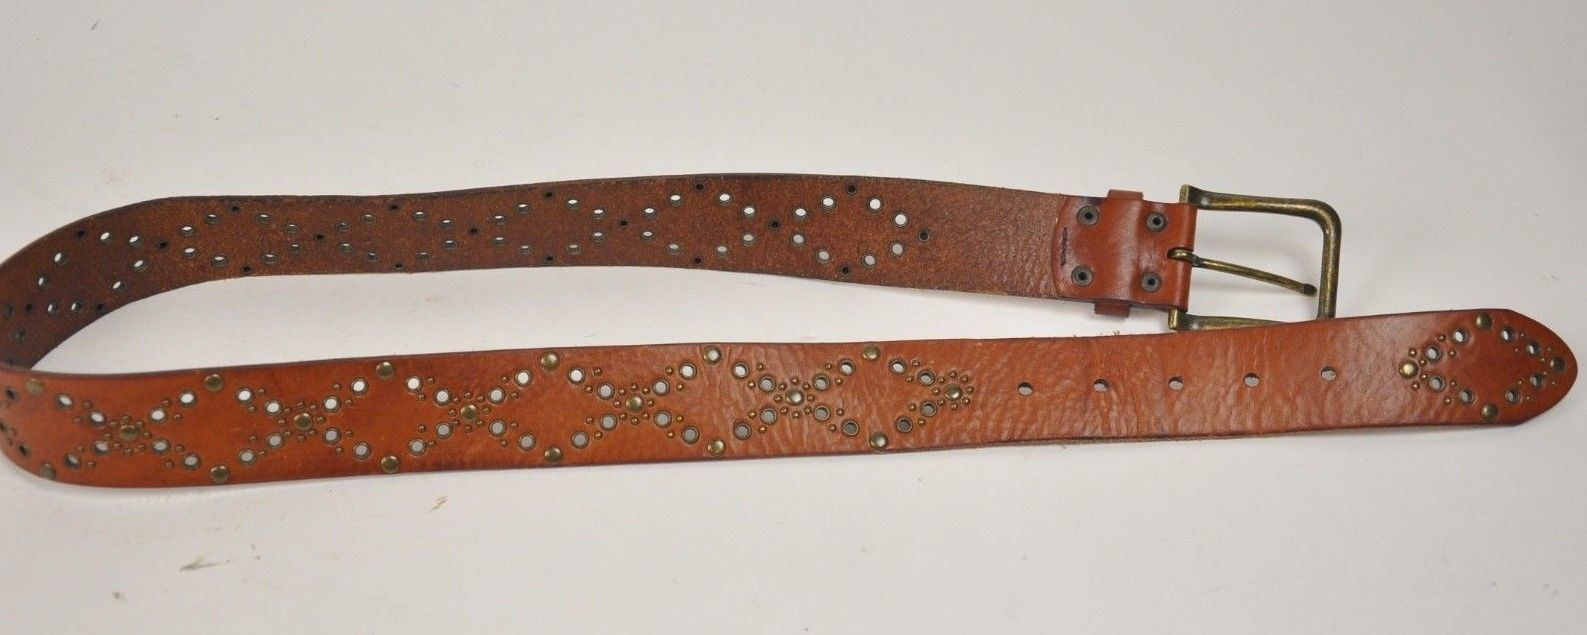 "Women's FOSSIL Brown Leather Belt Brass Rivets Diamonds Size Medium 33""-37"" image 3"